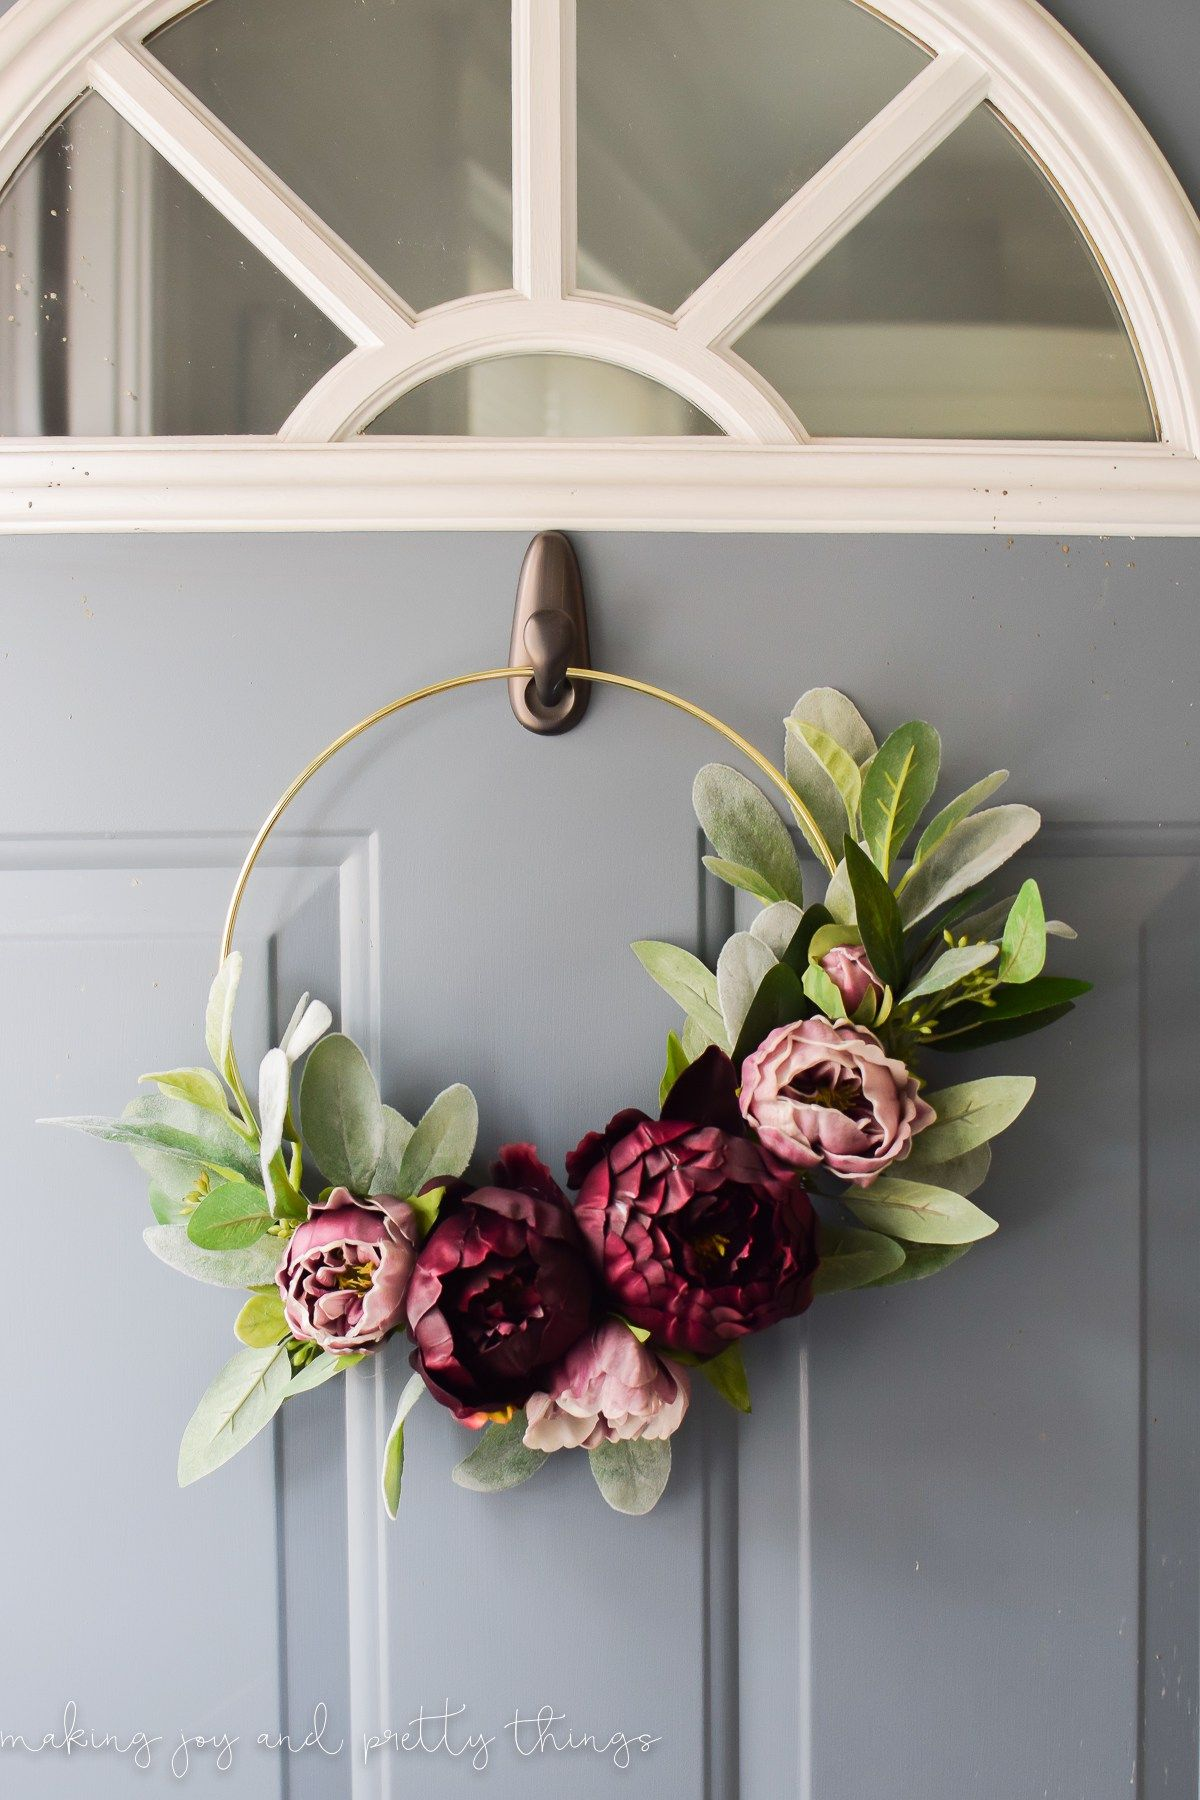 How To Make A Spring Wreath For Front Door Diy Modern Fall Gold Ring Wreath Wreaths Gold Hoops